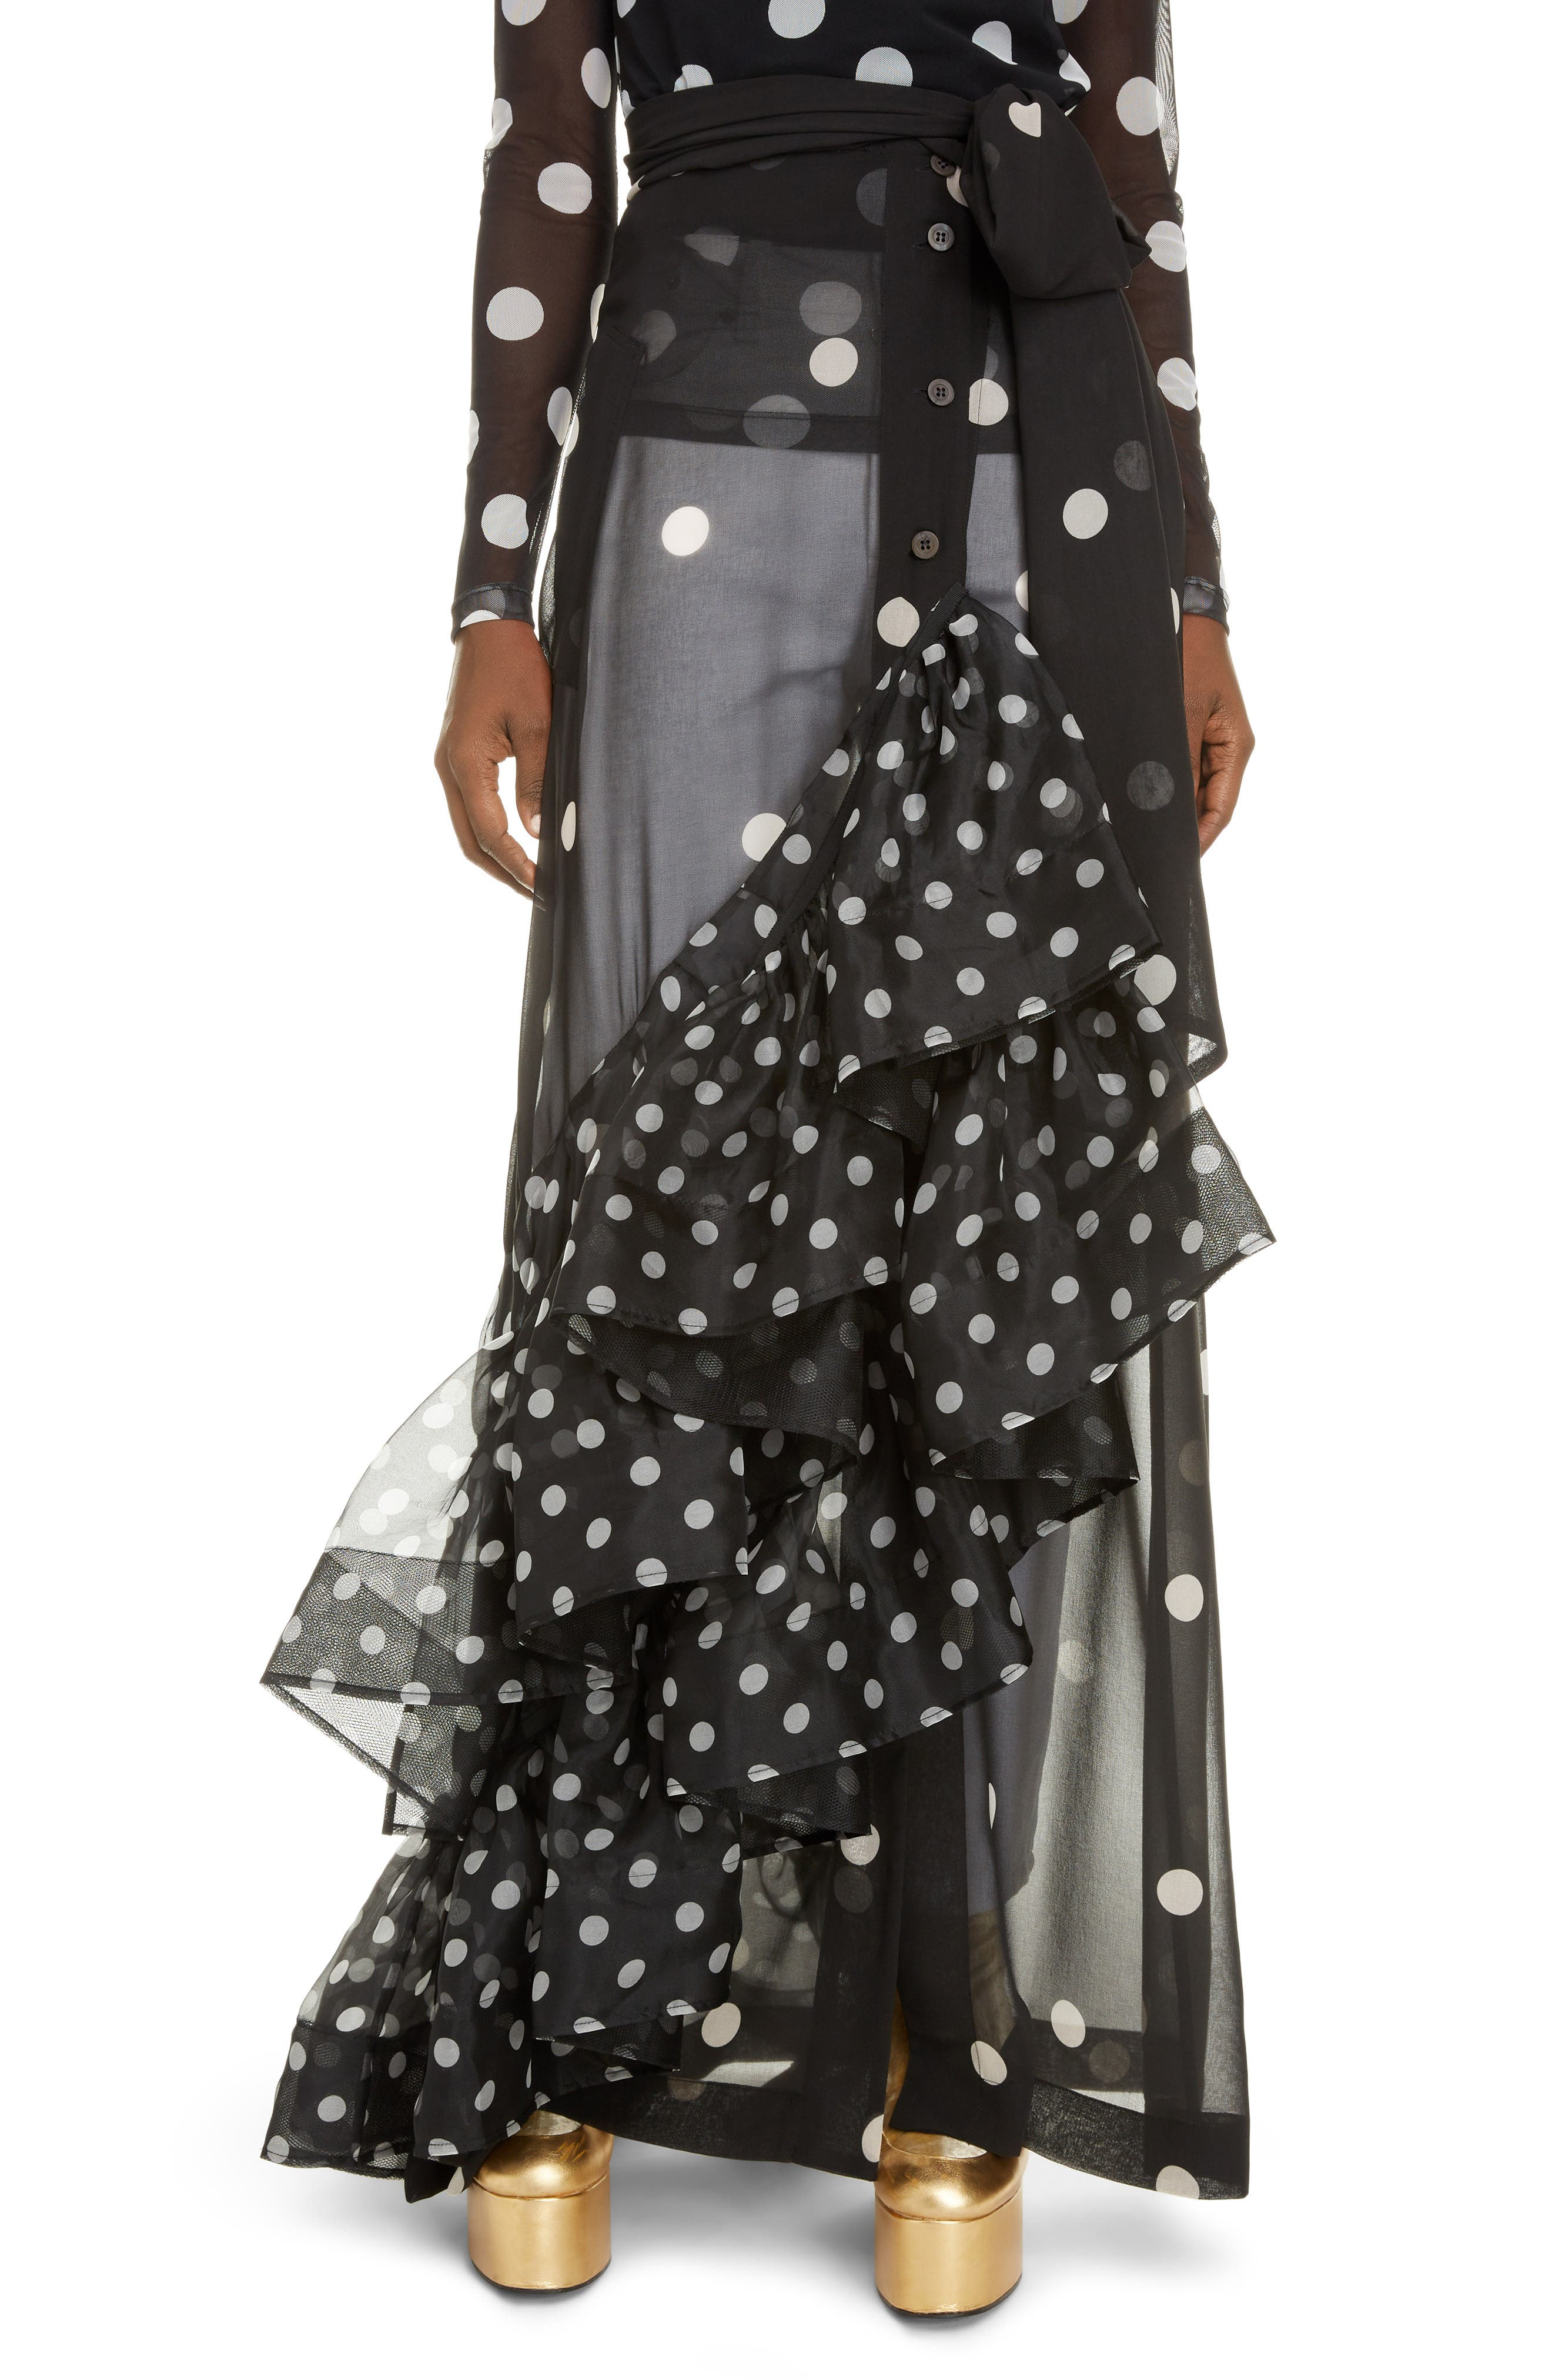 Christian Lacroix brought haute drama to Dries Van Noten\\\'s modern, wearable vision as seen in this beautifully designed sheer maxi with asymmetrical ruffles. Mixed-width dots spotlight the sweeping look. Style Name: Dries Van Noten Sikar Dot Ruffle Sheer Maxi Skirt. Style Number: 6004404. Available in stores.